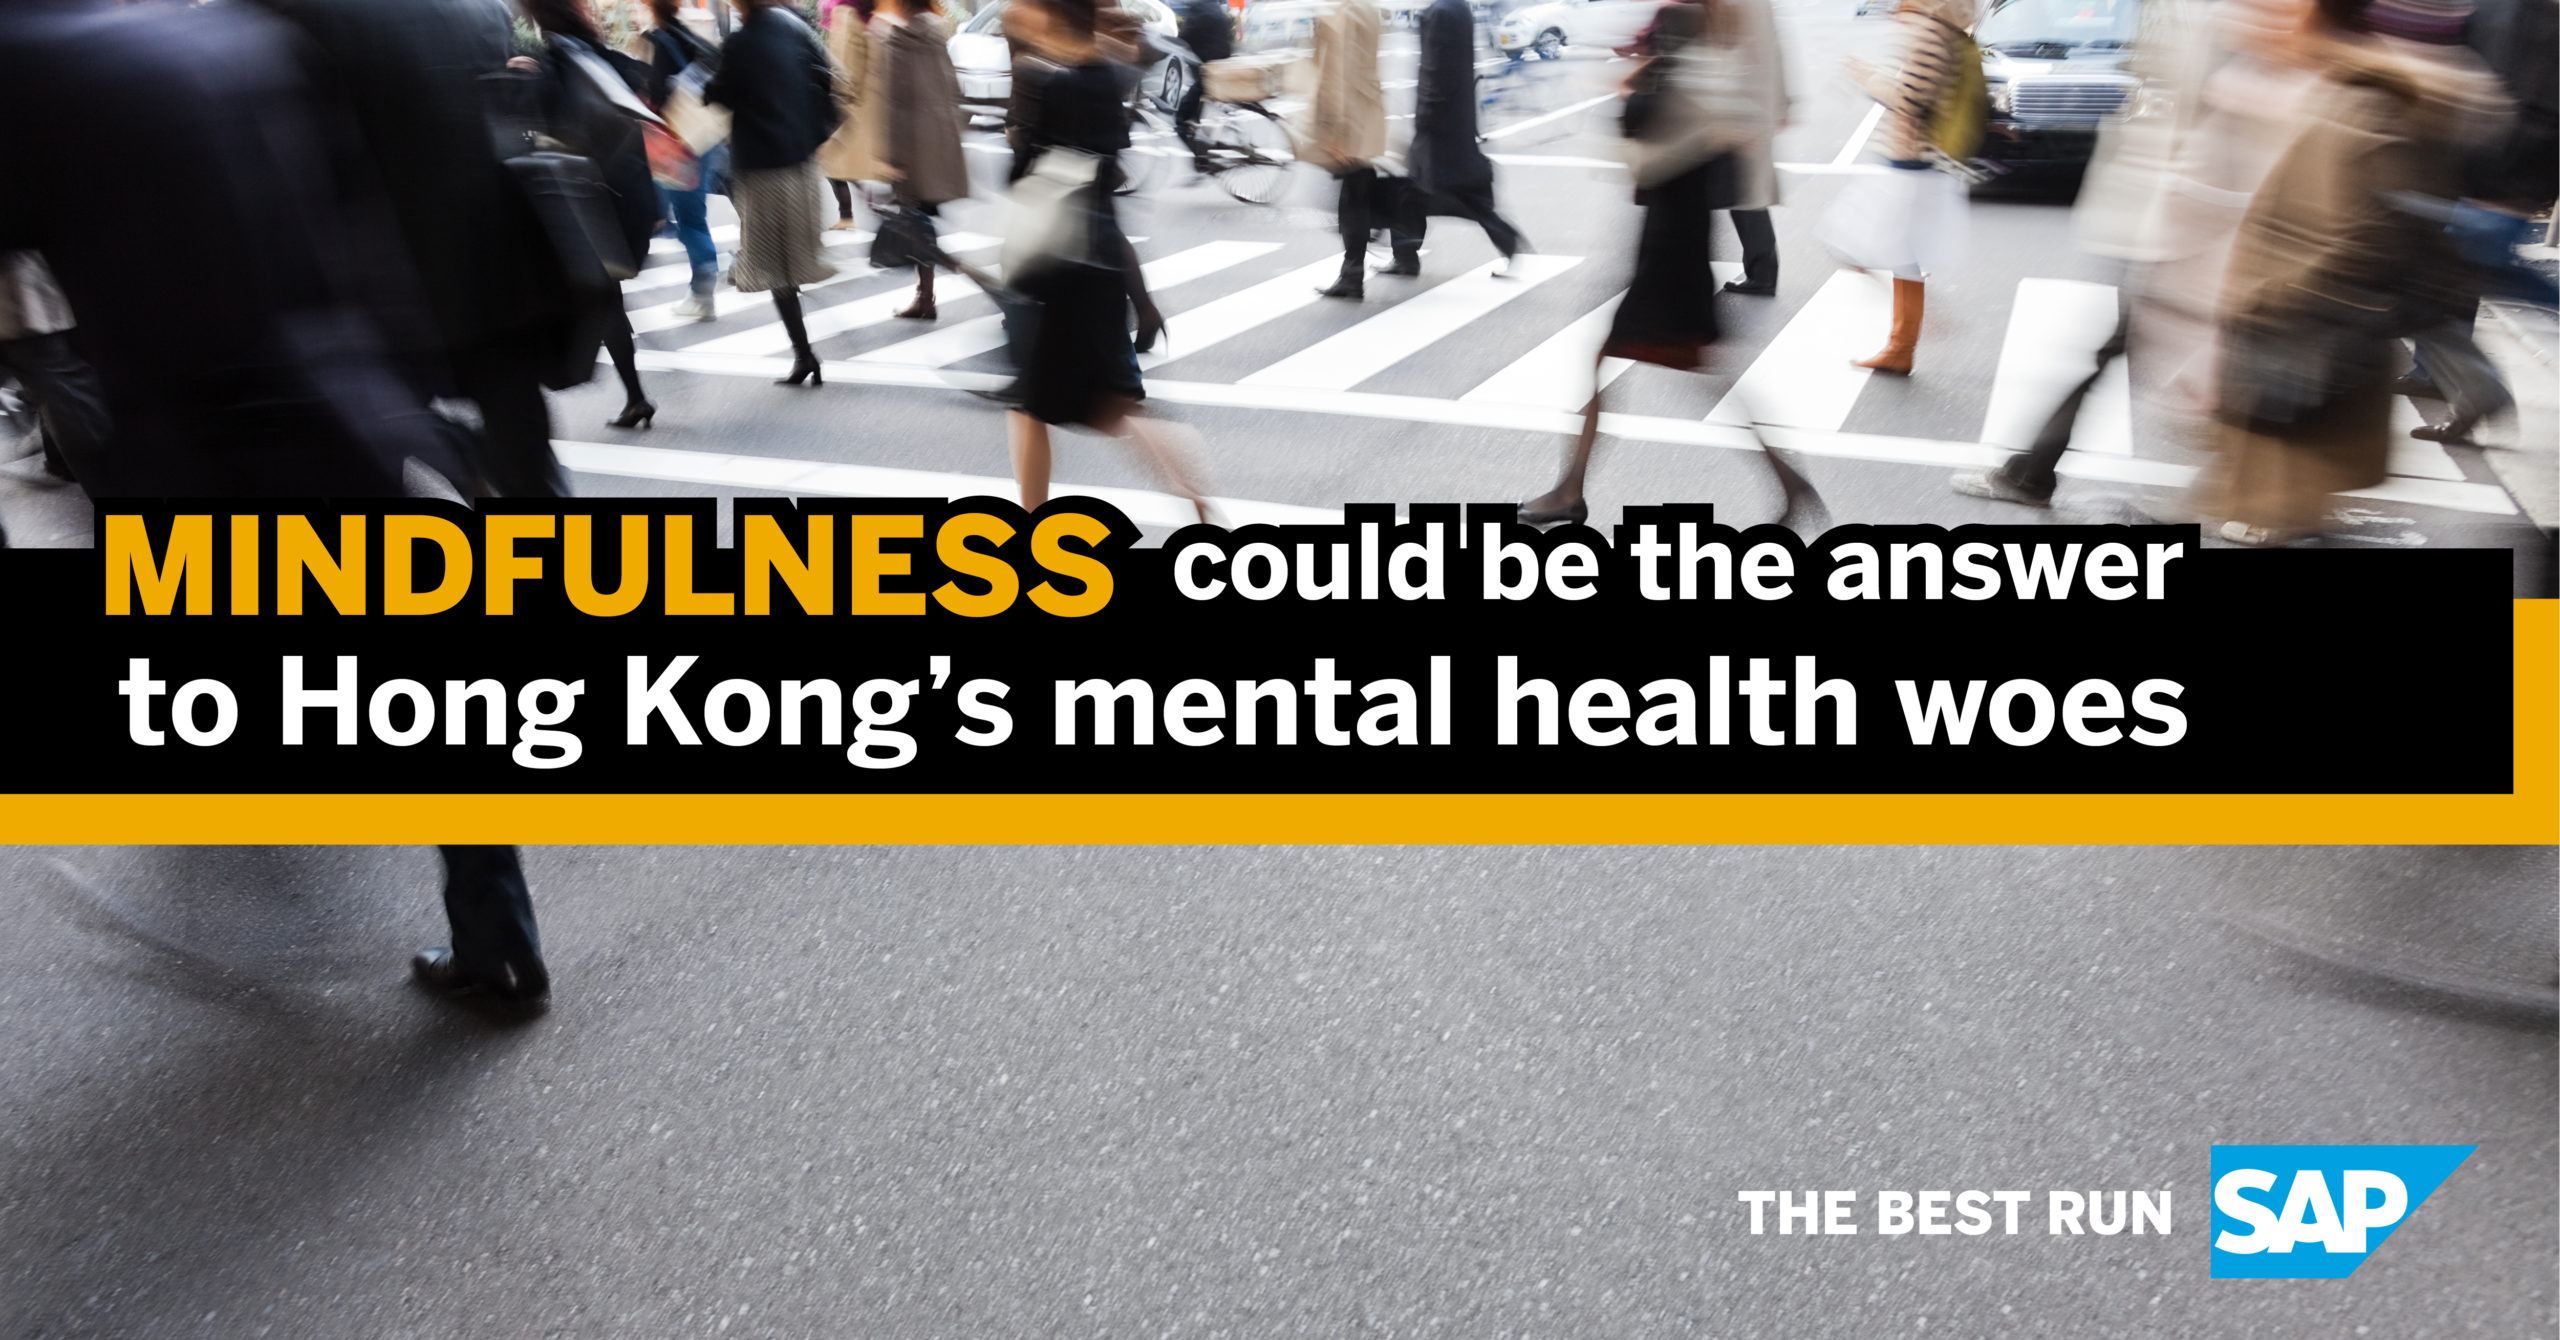 Mindfulness Could Be The Answer To Hong Kong's Mental Health Woes